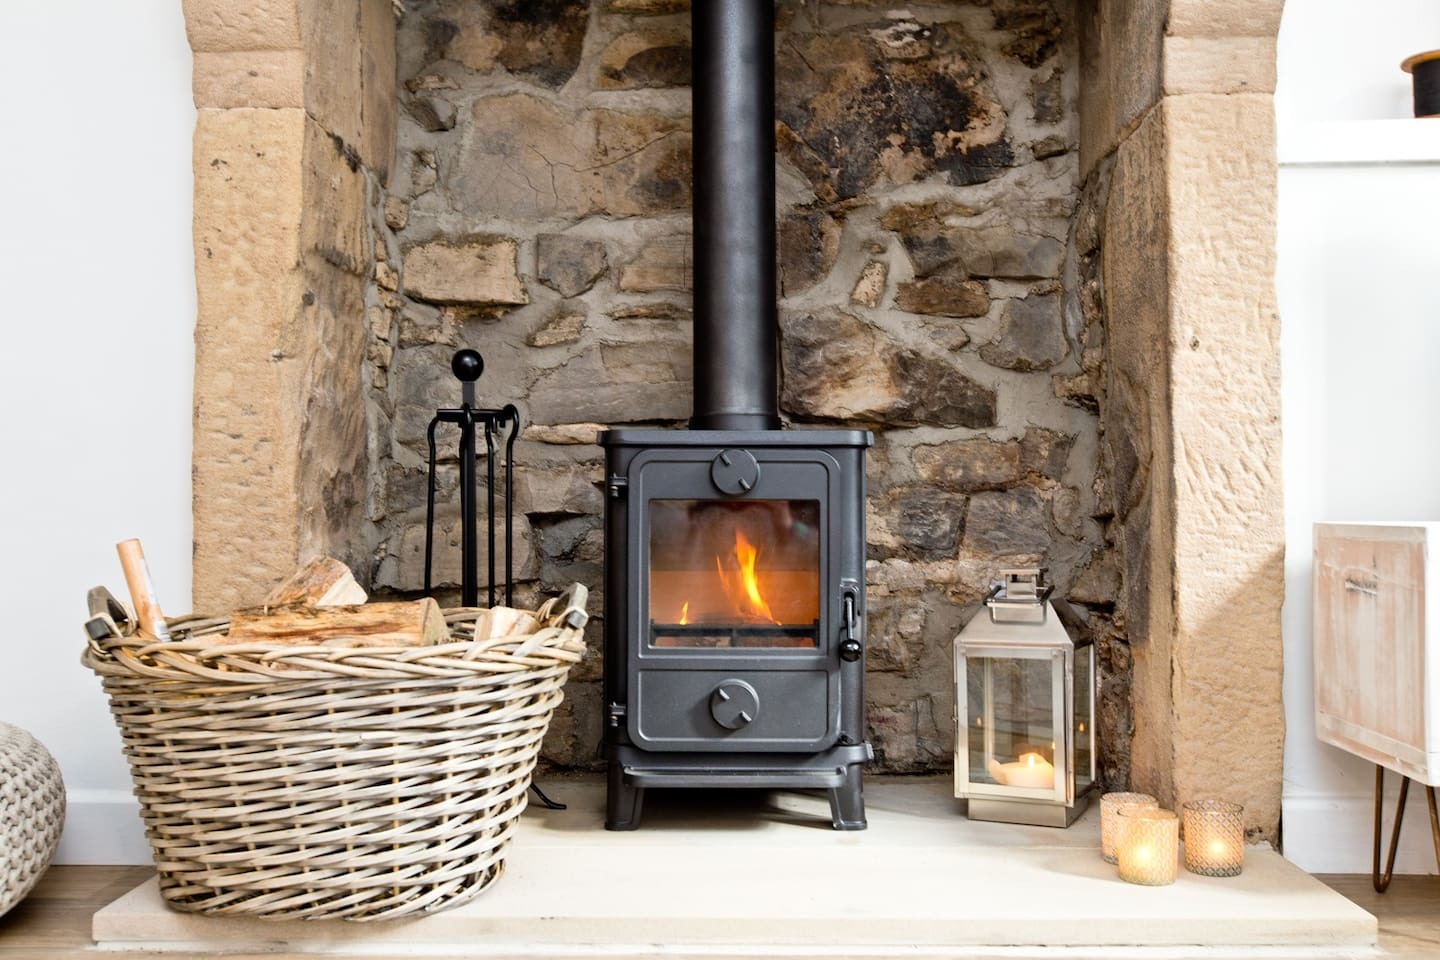 Log burner and traditional fireplace